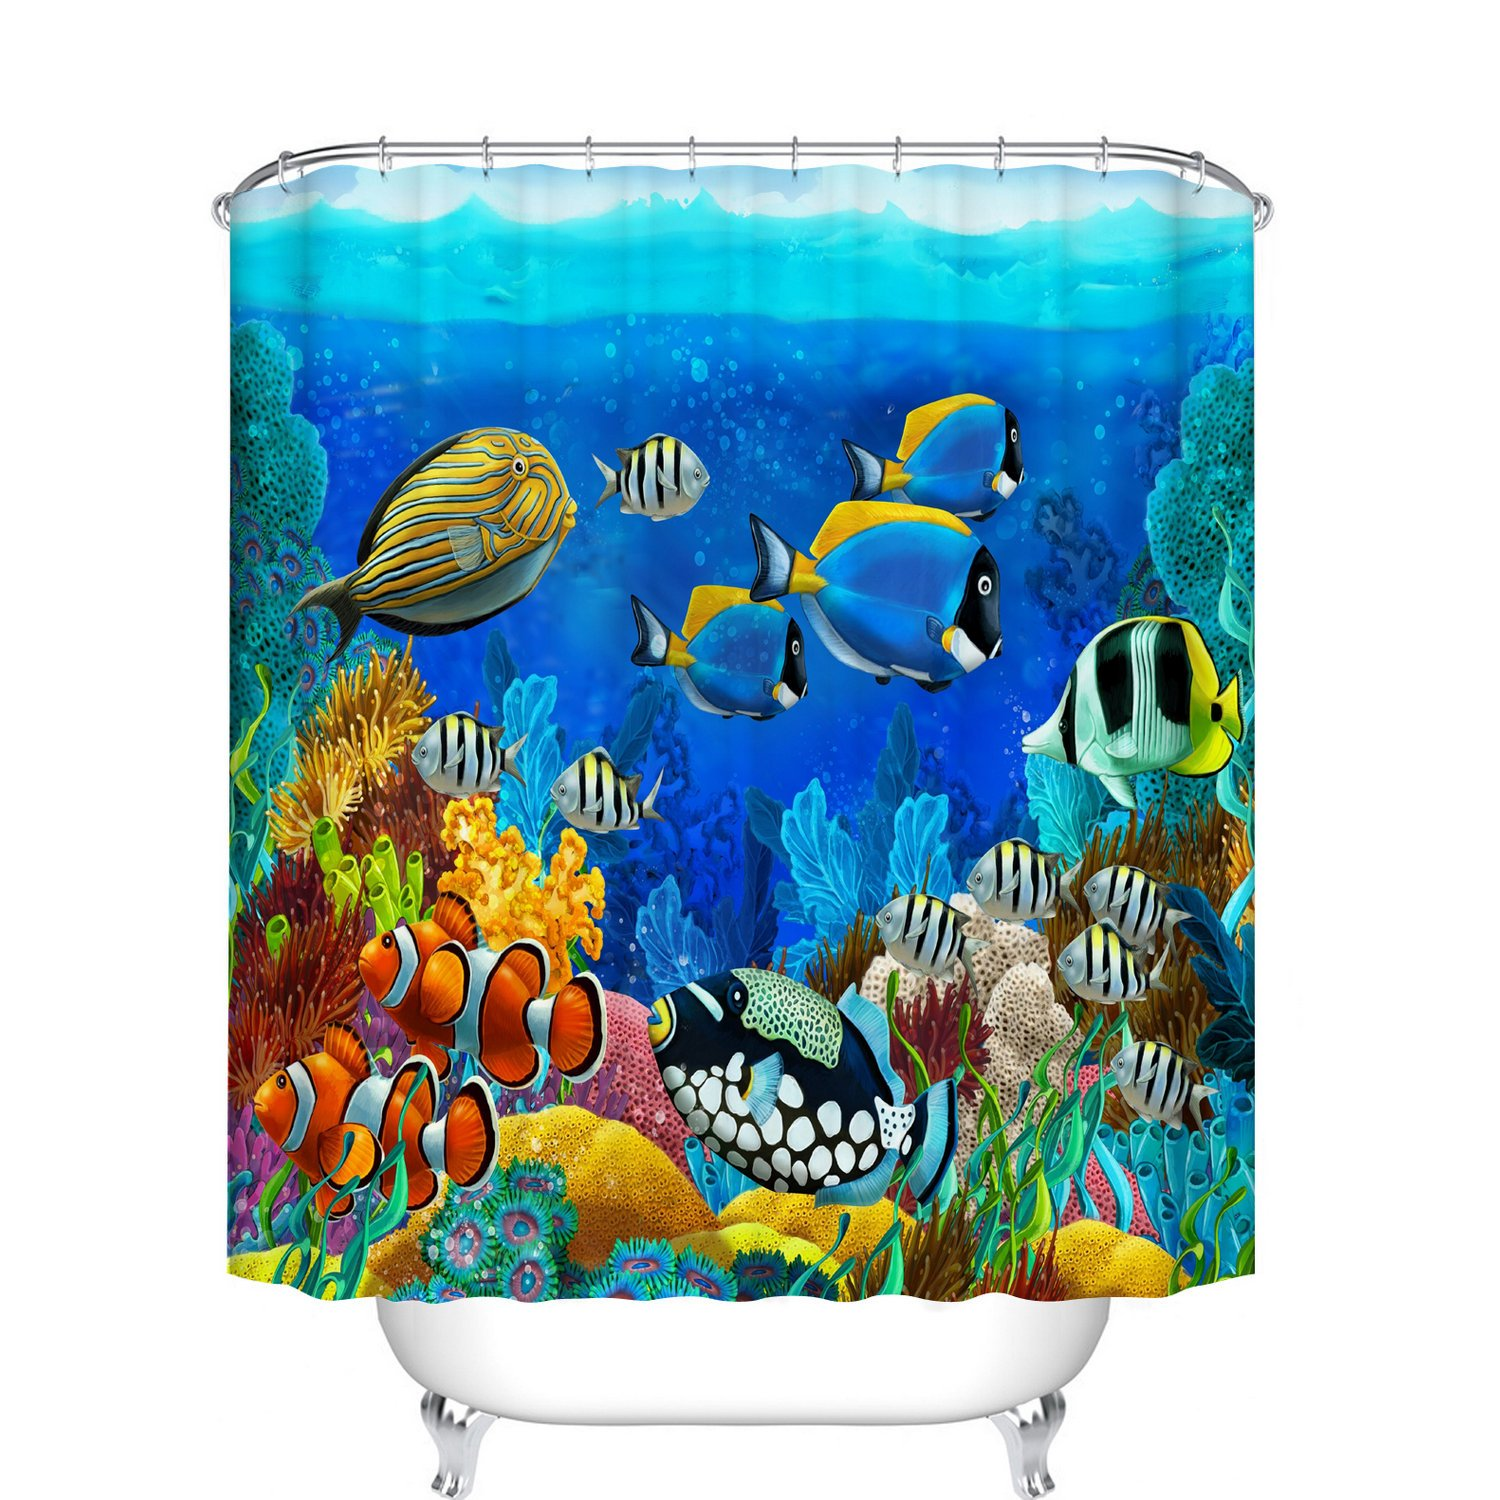 Fangkun Bathroom Shower Curtain Blue Ocean Tropical Fish Coral Undersea World Design - Polyester Fabric Waterproof Bath Curtains Decor Set - 12pcs Hooks - 72 x 72 inches